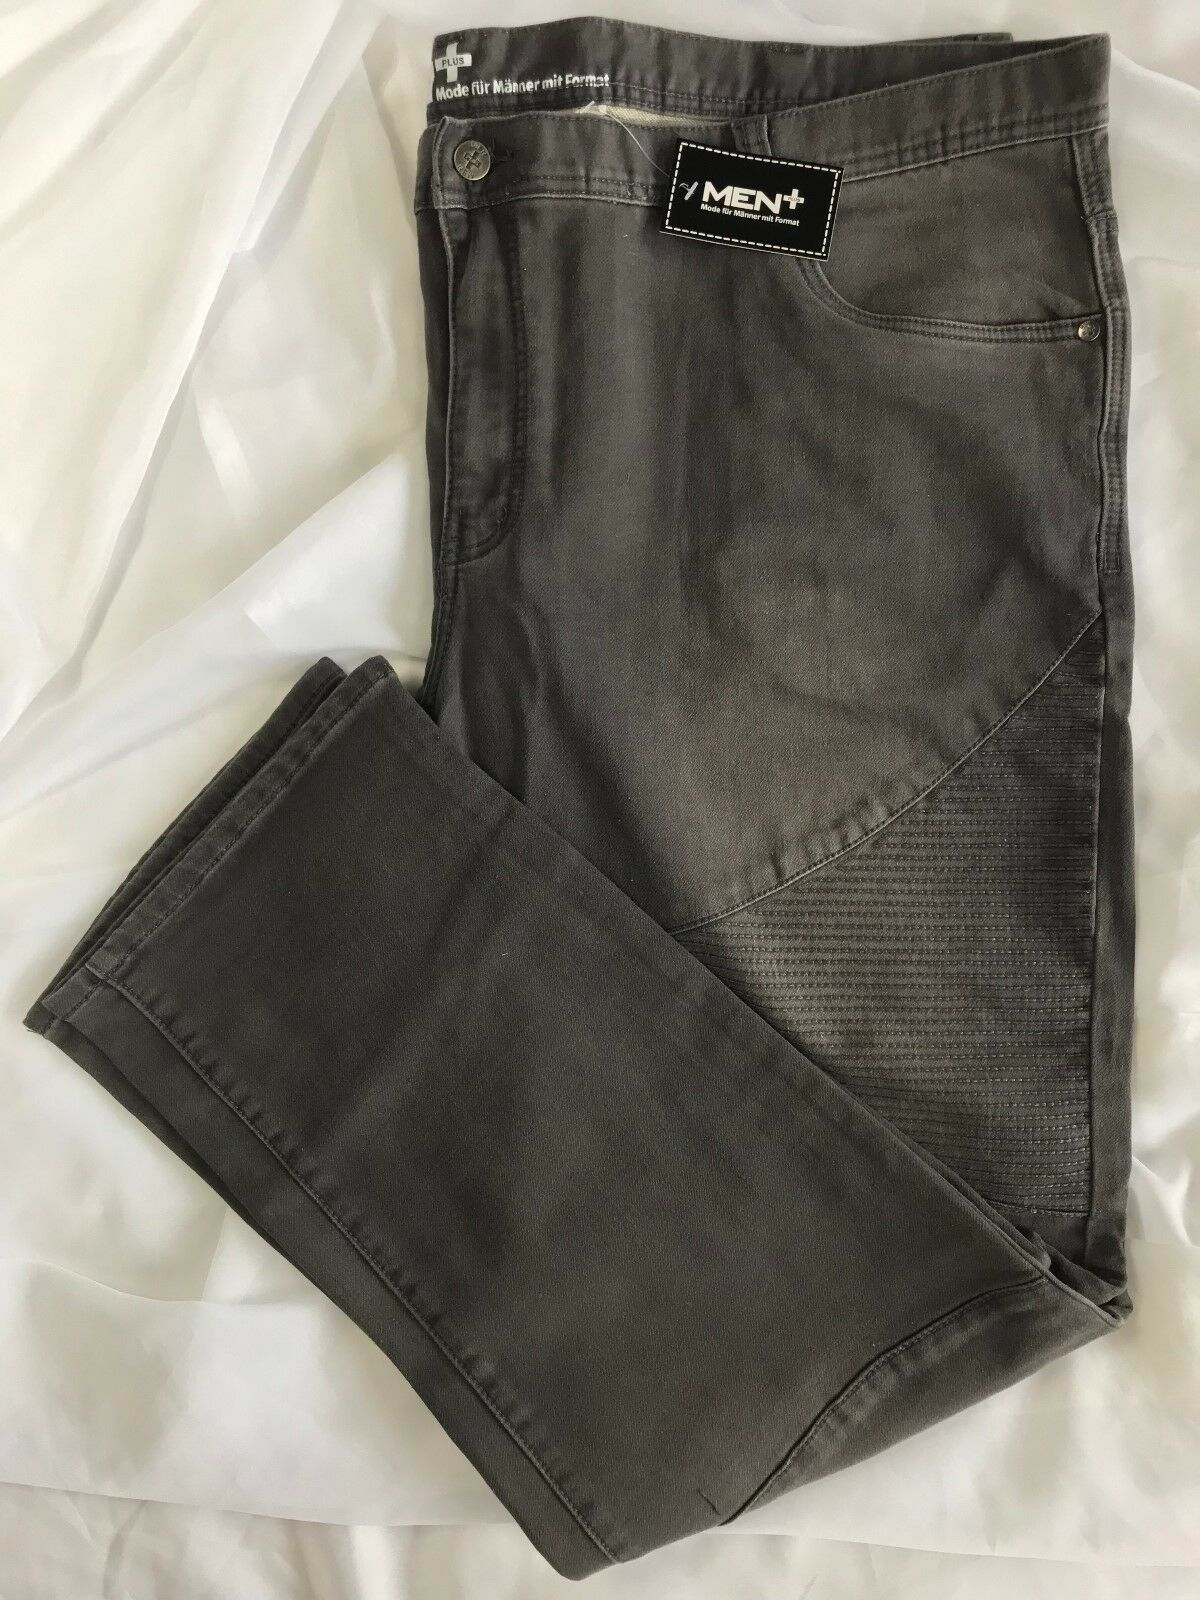 Herren Biker Jeans Hose Jog Denim 5-Pocket Slim Fit MEN Plus Gr.öße  31